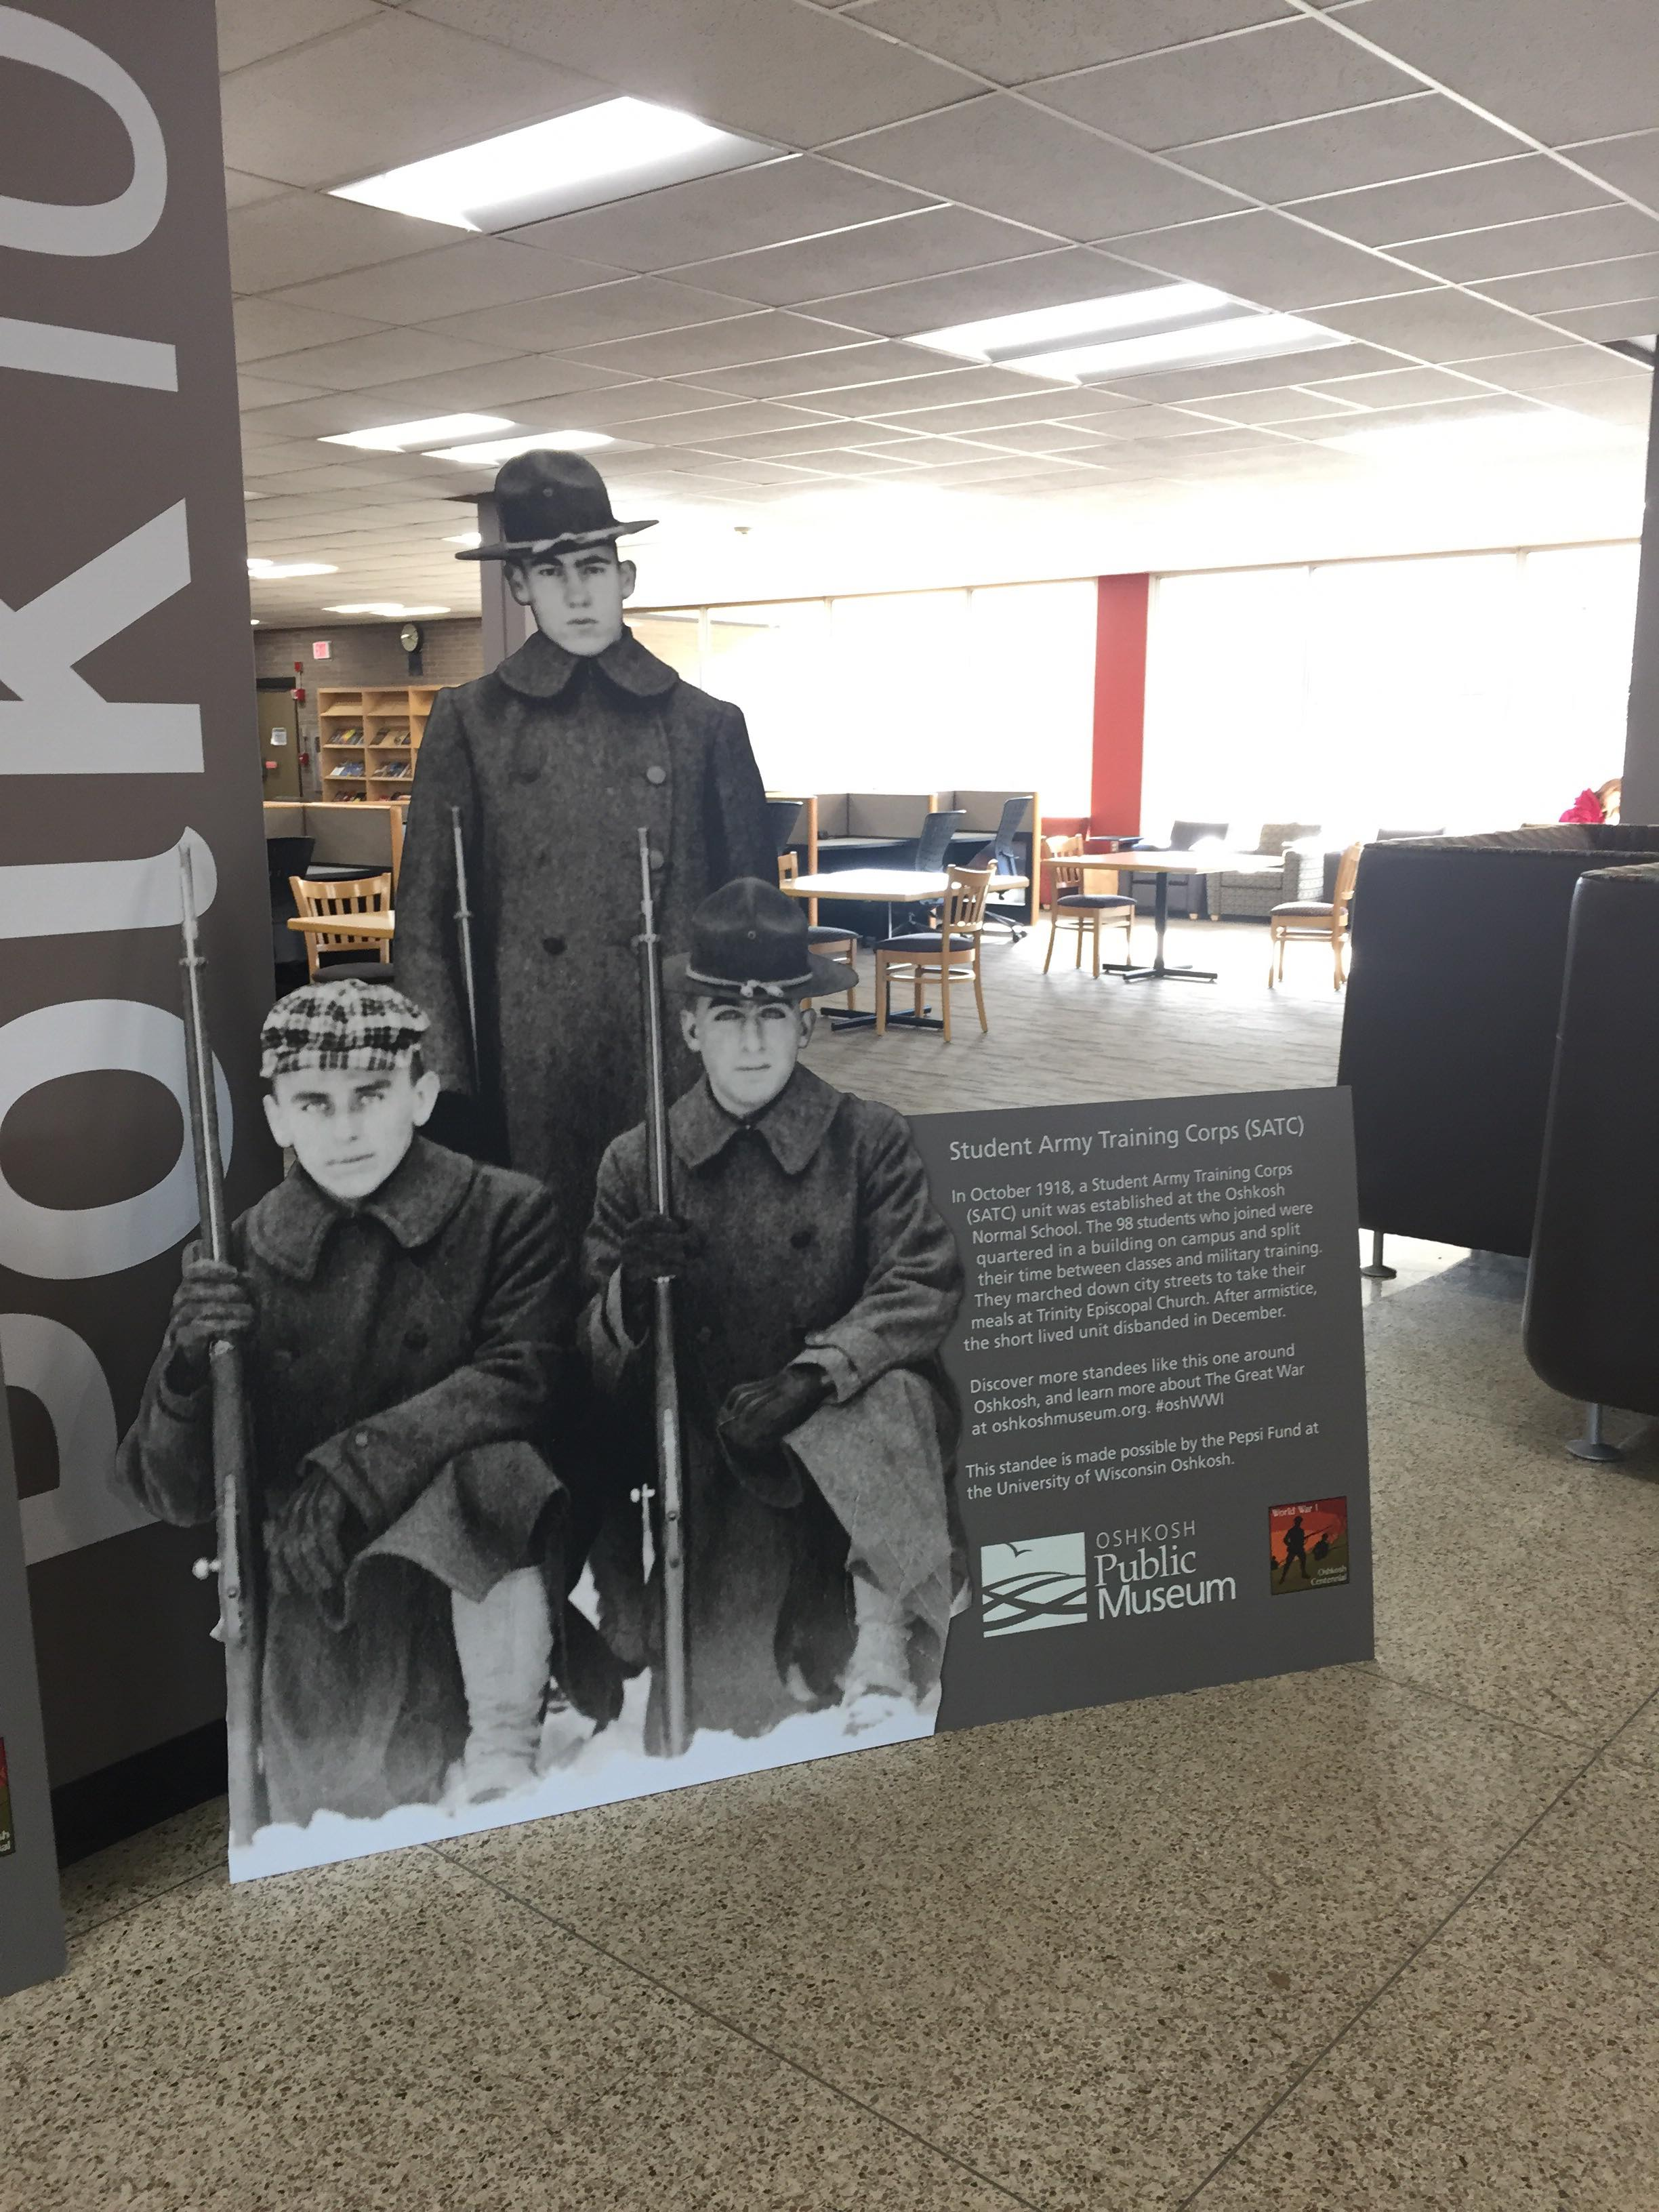 These three men were part of the Student Army Training Corps (SATC). The unit was established at the Oshkosh Normal School during WWI.{&amp;nbsp;}February 2, 2018. (WLUK/Pafoua Yang) <p></p>